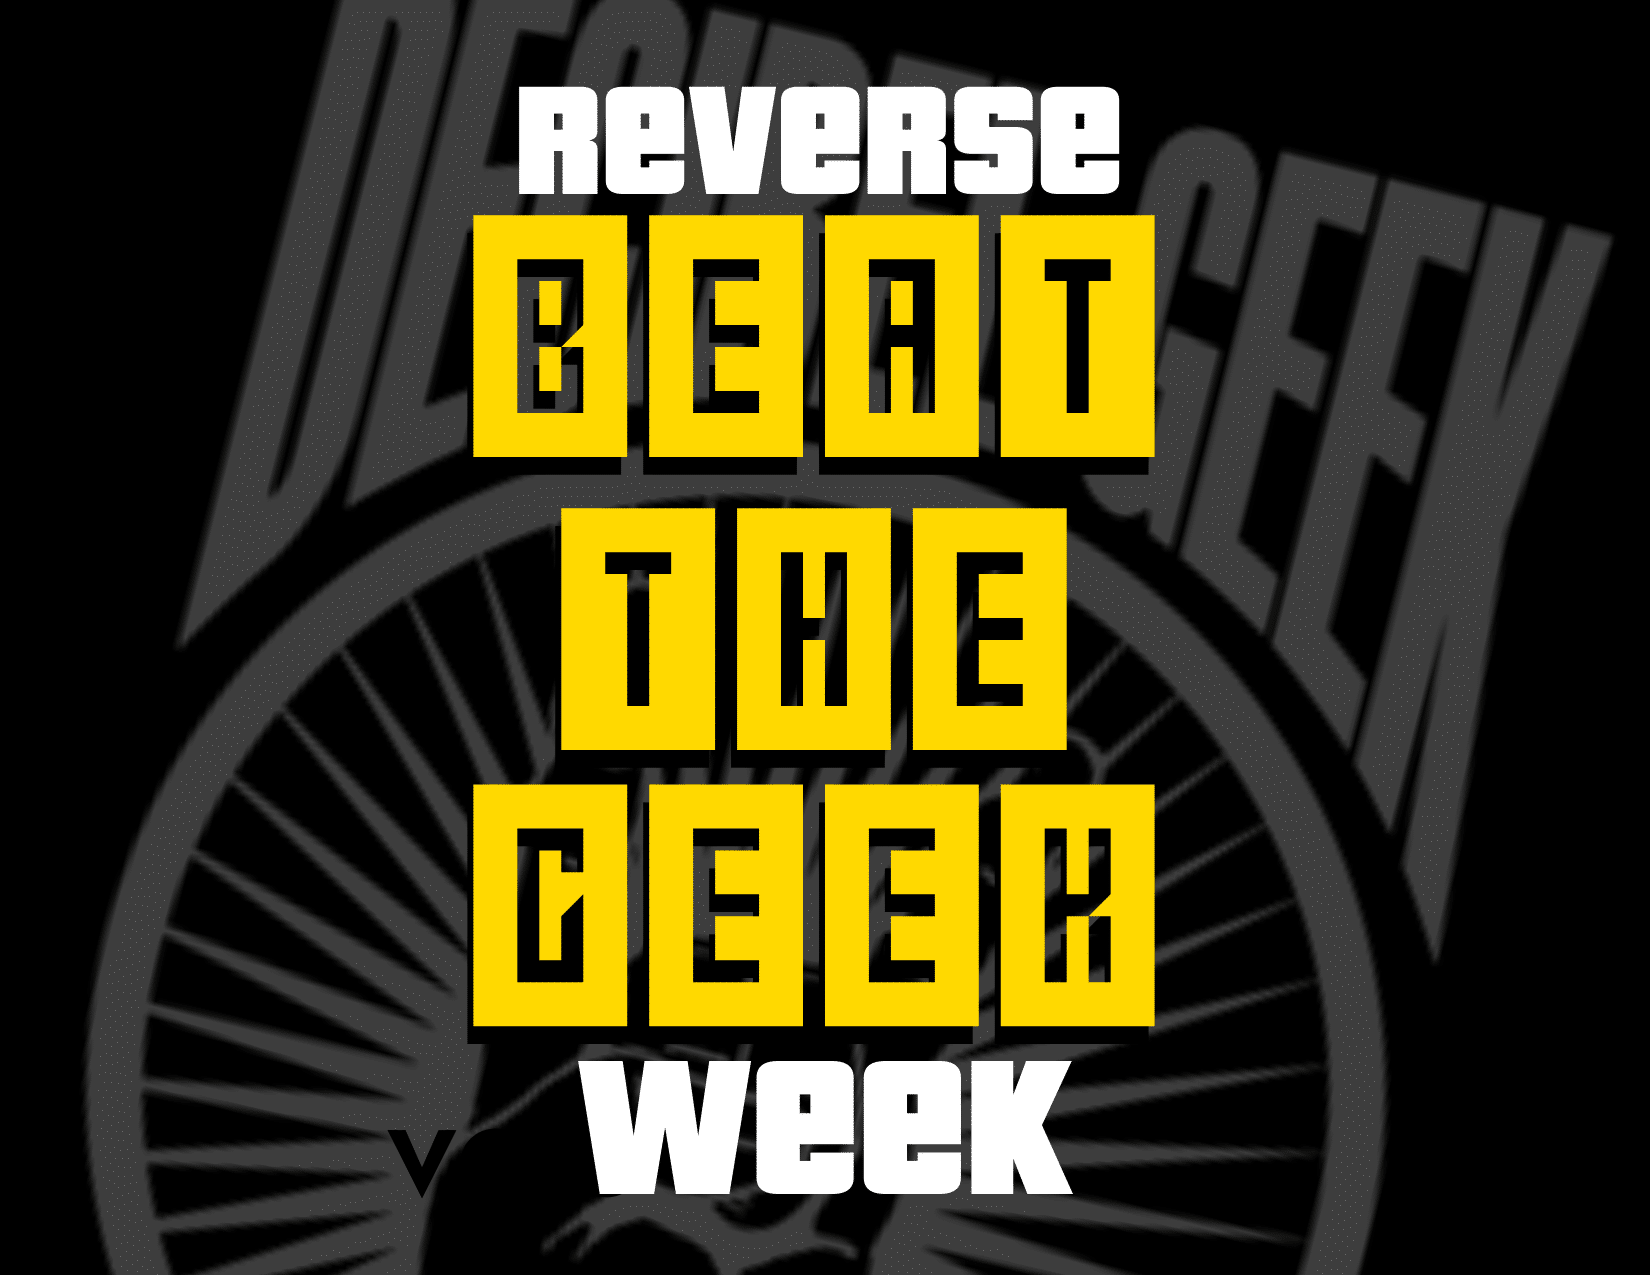 Reverse Beat the Geek, rock, metal, trivia, game, show